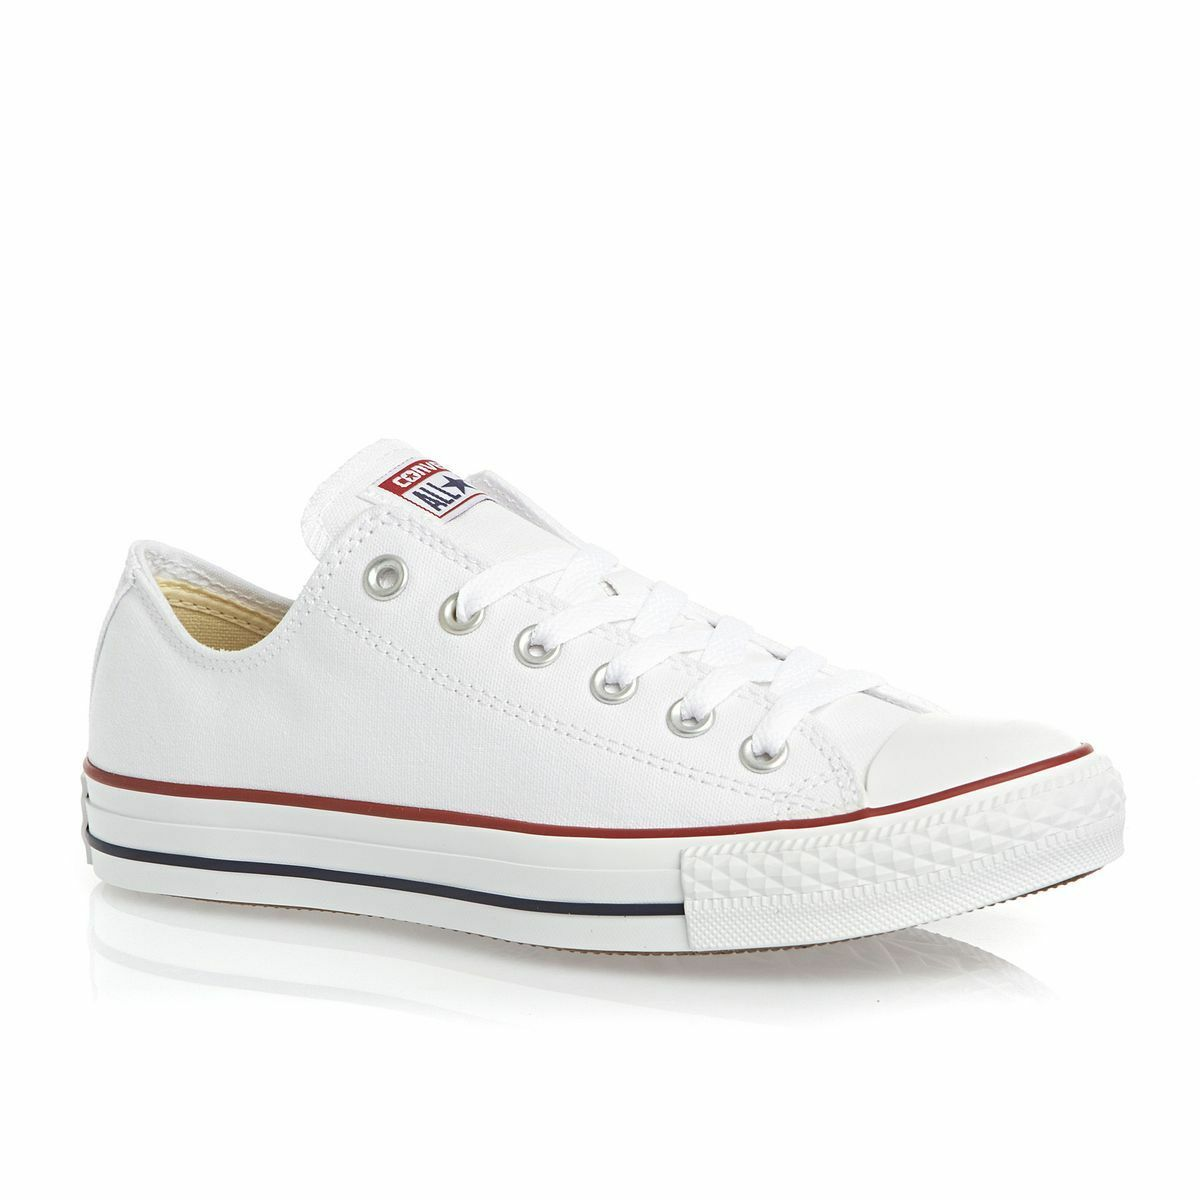 Converse All Star ox Canvas Mens Trainers shoes White Size 9.5 UK   43 EU